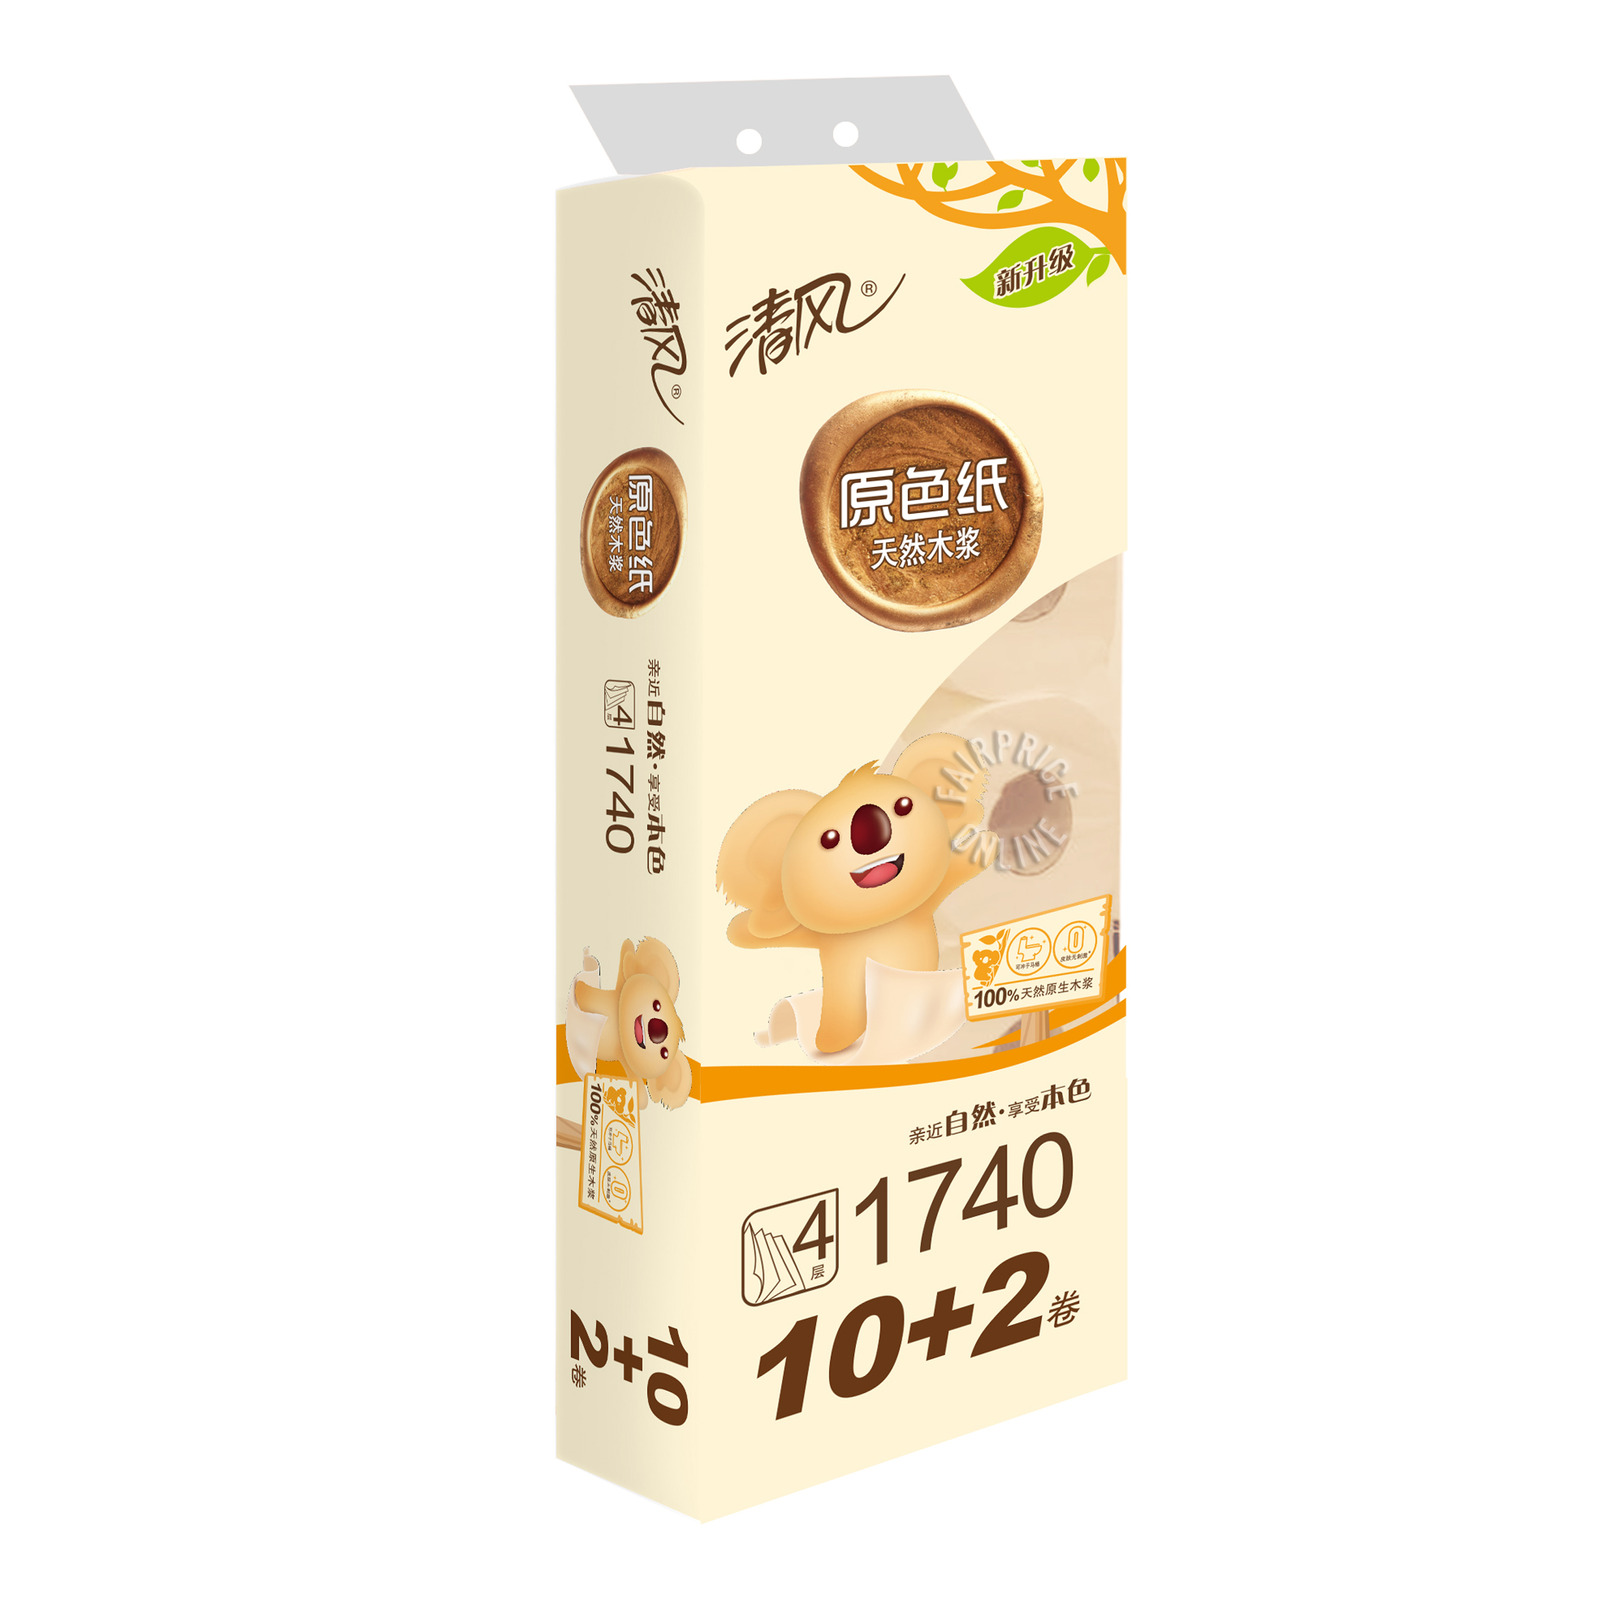 Qing Feng Toilet Tissue - 4 Ply